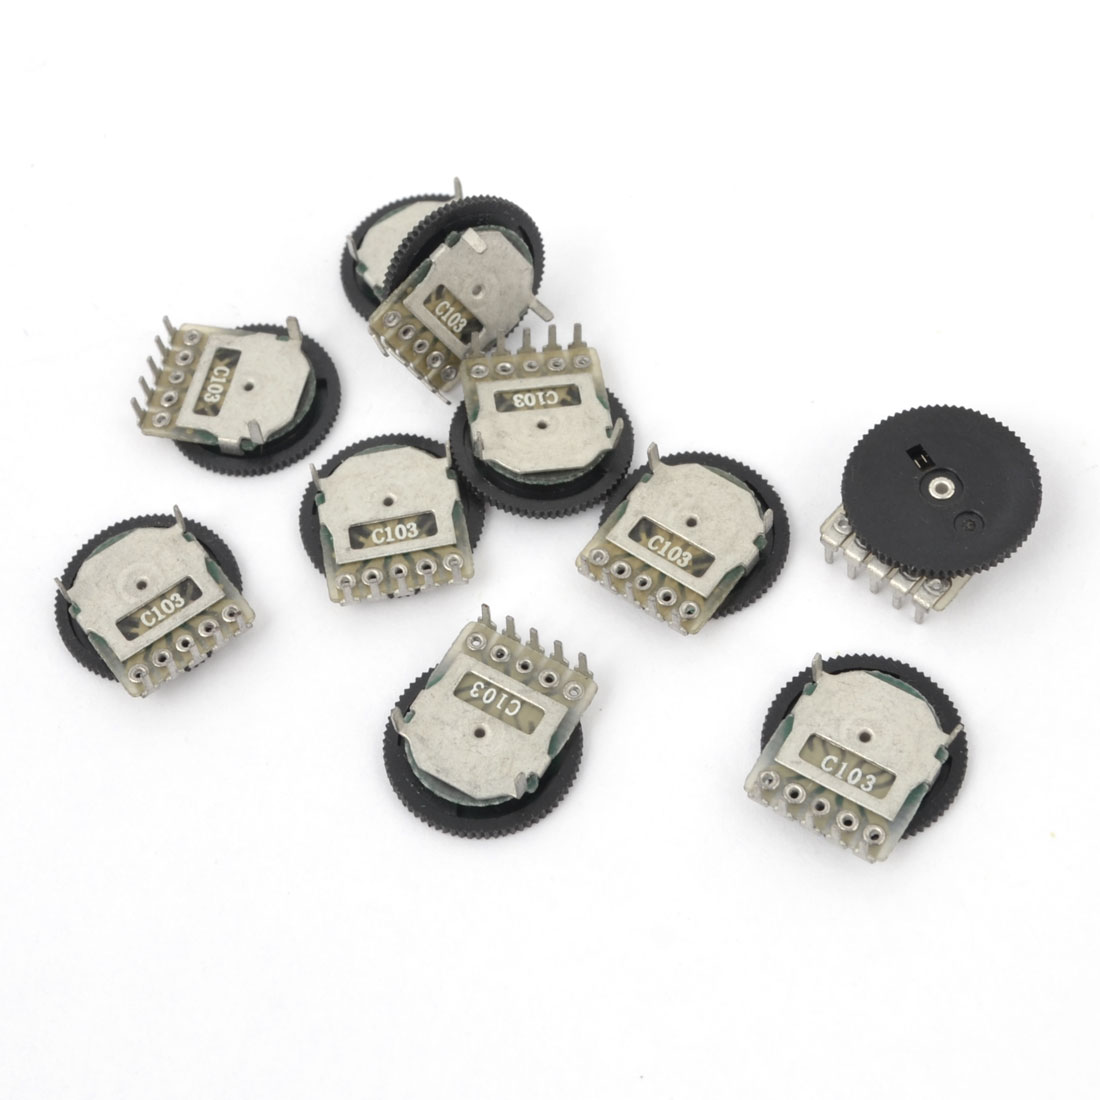 10 Pcs 90 Degree C Type 10K Ohm Potentiometer Electric Component